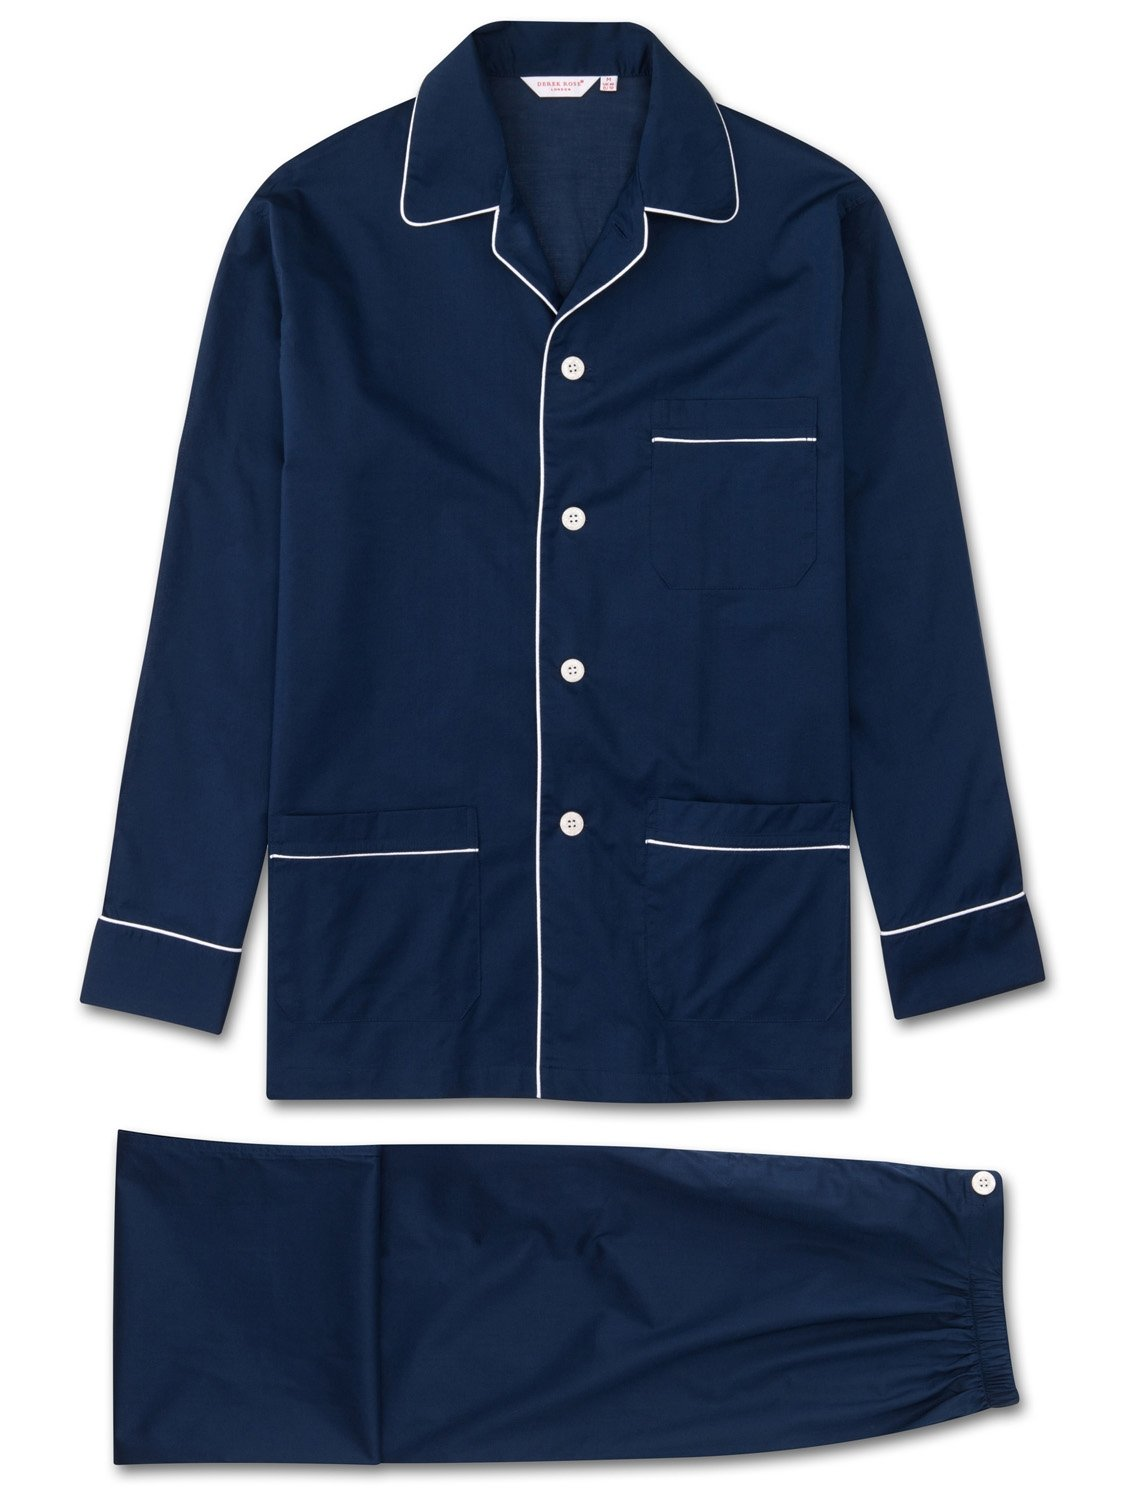 Men's Classic Fit Piped Pyjamas Amalfi Cotton Batiste Navy